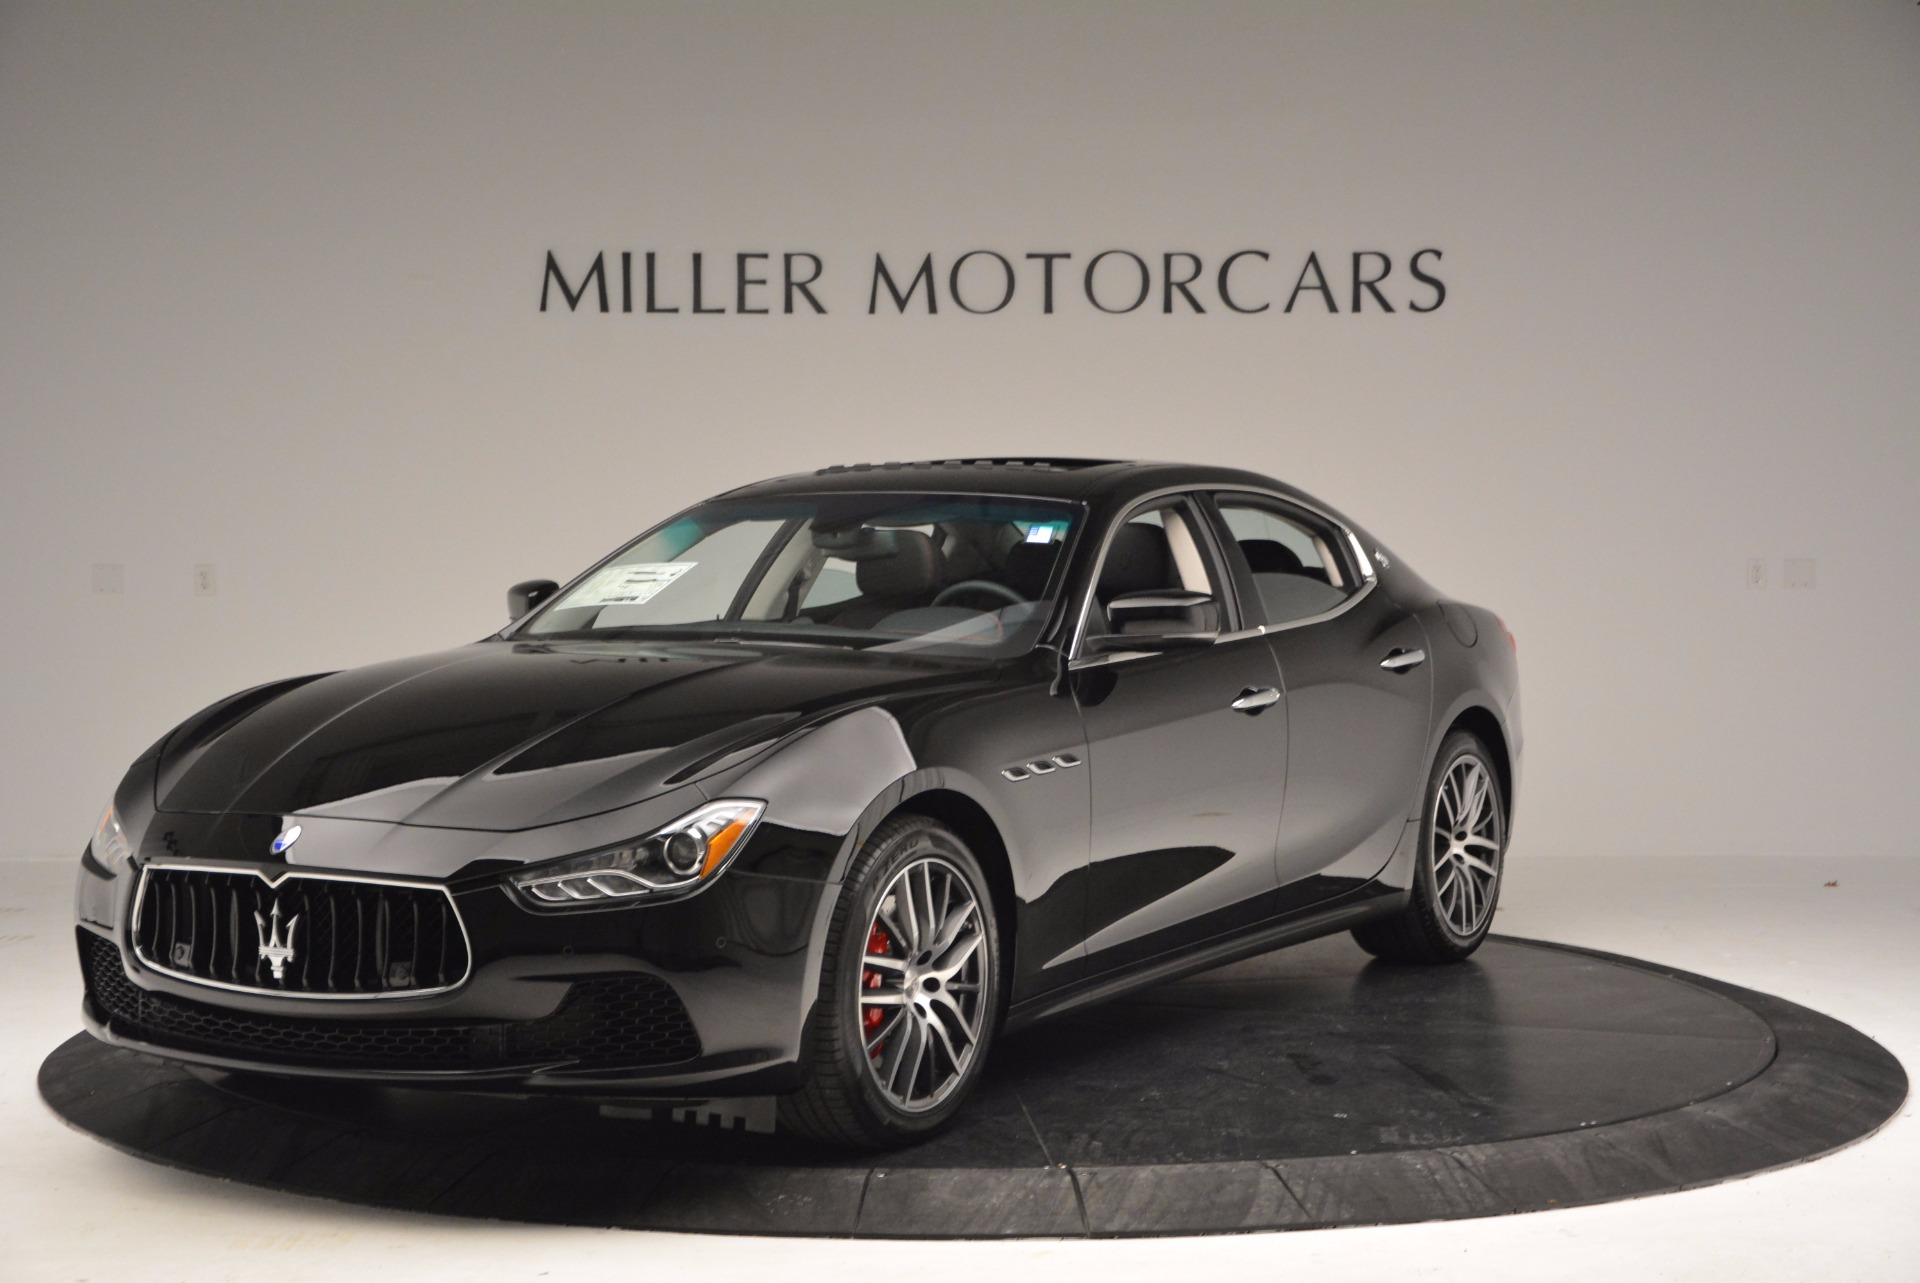 New 2017 Maserati Ghibli S Q4 for sale Sold at Bentley Greenwich in Greenwich CT 06830 1